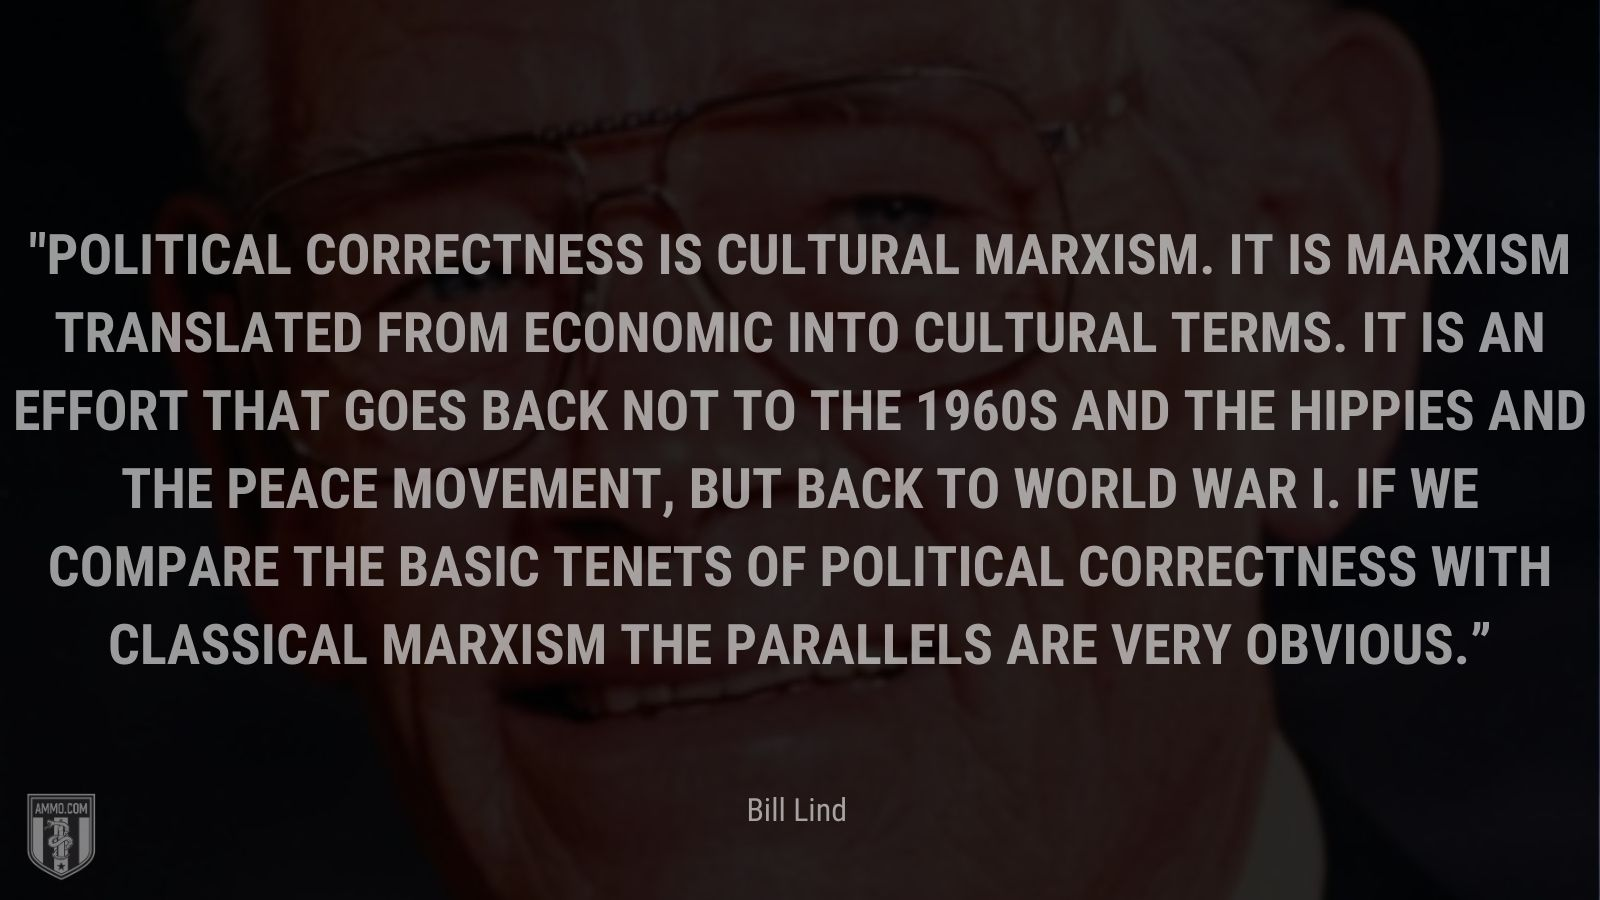 """""""Political Correctness is cultural Marxism. It is Marxism translated from economic into cultural terms. It is an effort that goes back not to the 1960s and the hippies and the peace movement, but back to World War I. If we compare the basic tenets of Political Correctness with classical Marxism the parallels are very obvious."""" - Bill Lind"""